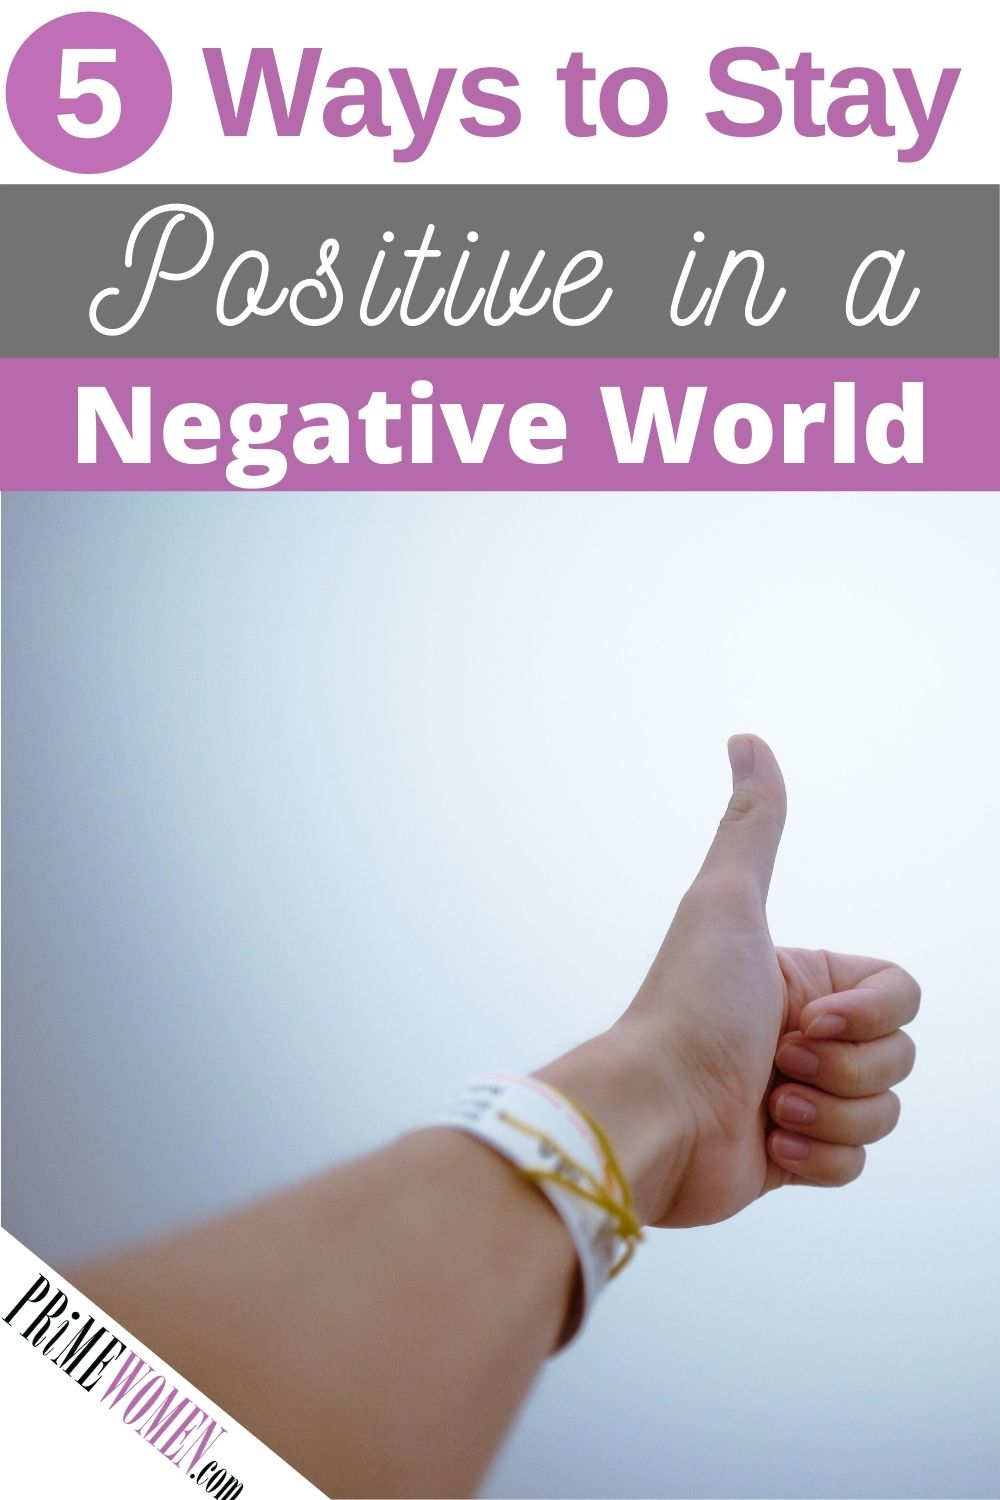 5 Ways to Stay Positive in a Negative World